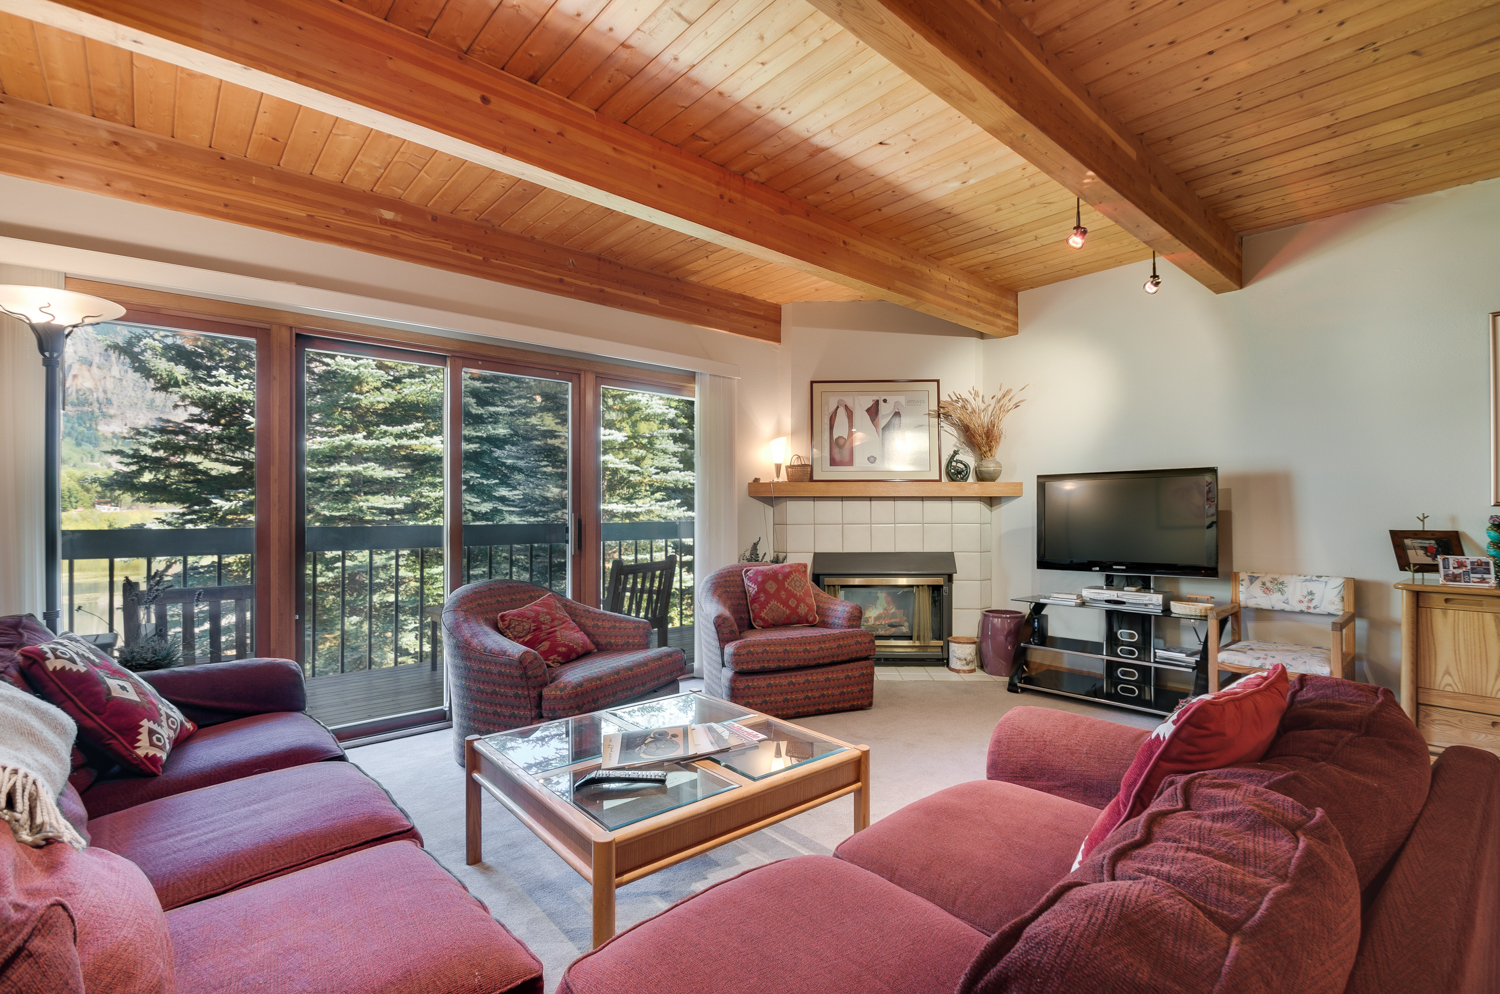 Living area to fireplace with comfortable sofa and chairs